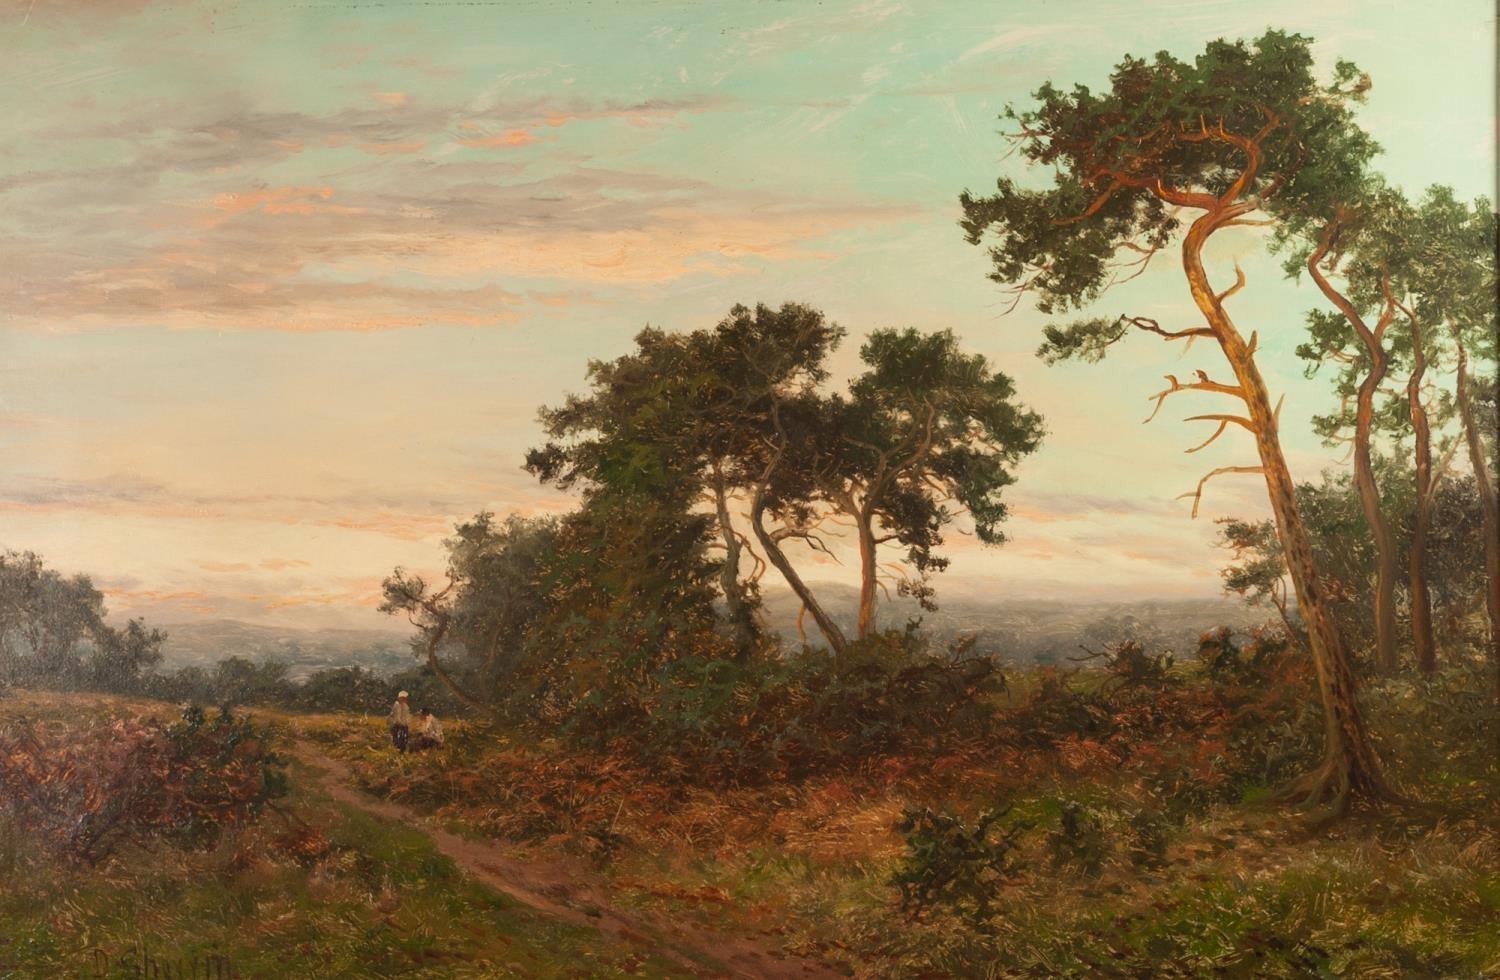 Lot 233 - DANIEL SHERRIN (1864-1940) Oil painting on canvas The Edge of the Pine Woods, Surrey, signed lower